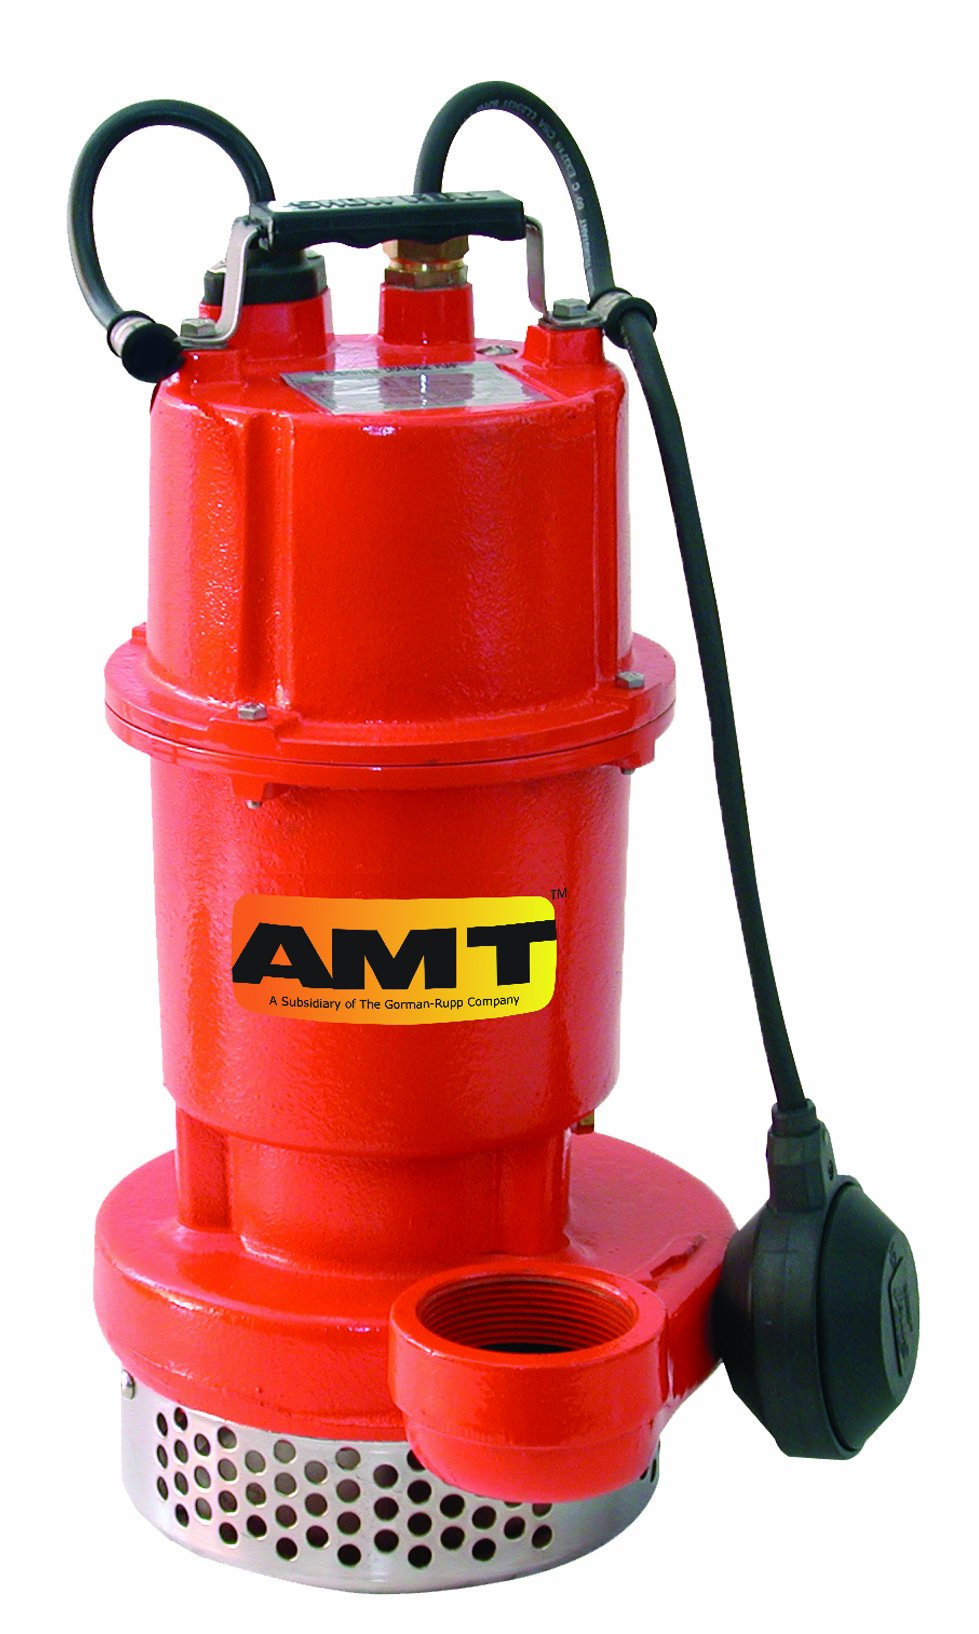 AMT Pump 5780-98 Submersible Utility Pump, Stainless Steel, 1/2 HP, 115V, Curve B, 2'' NPT Female Discharge Port